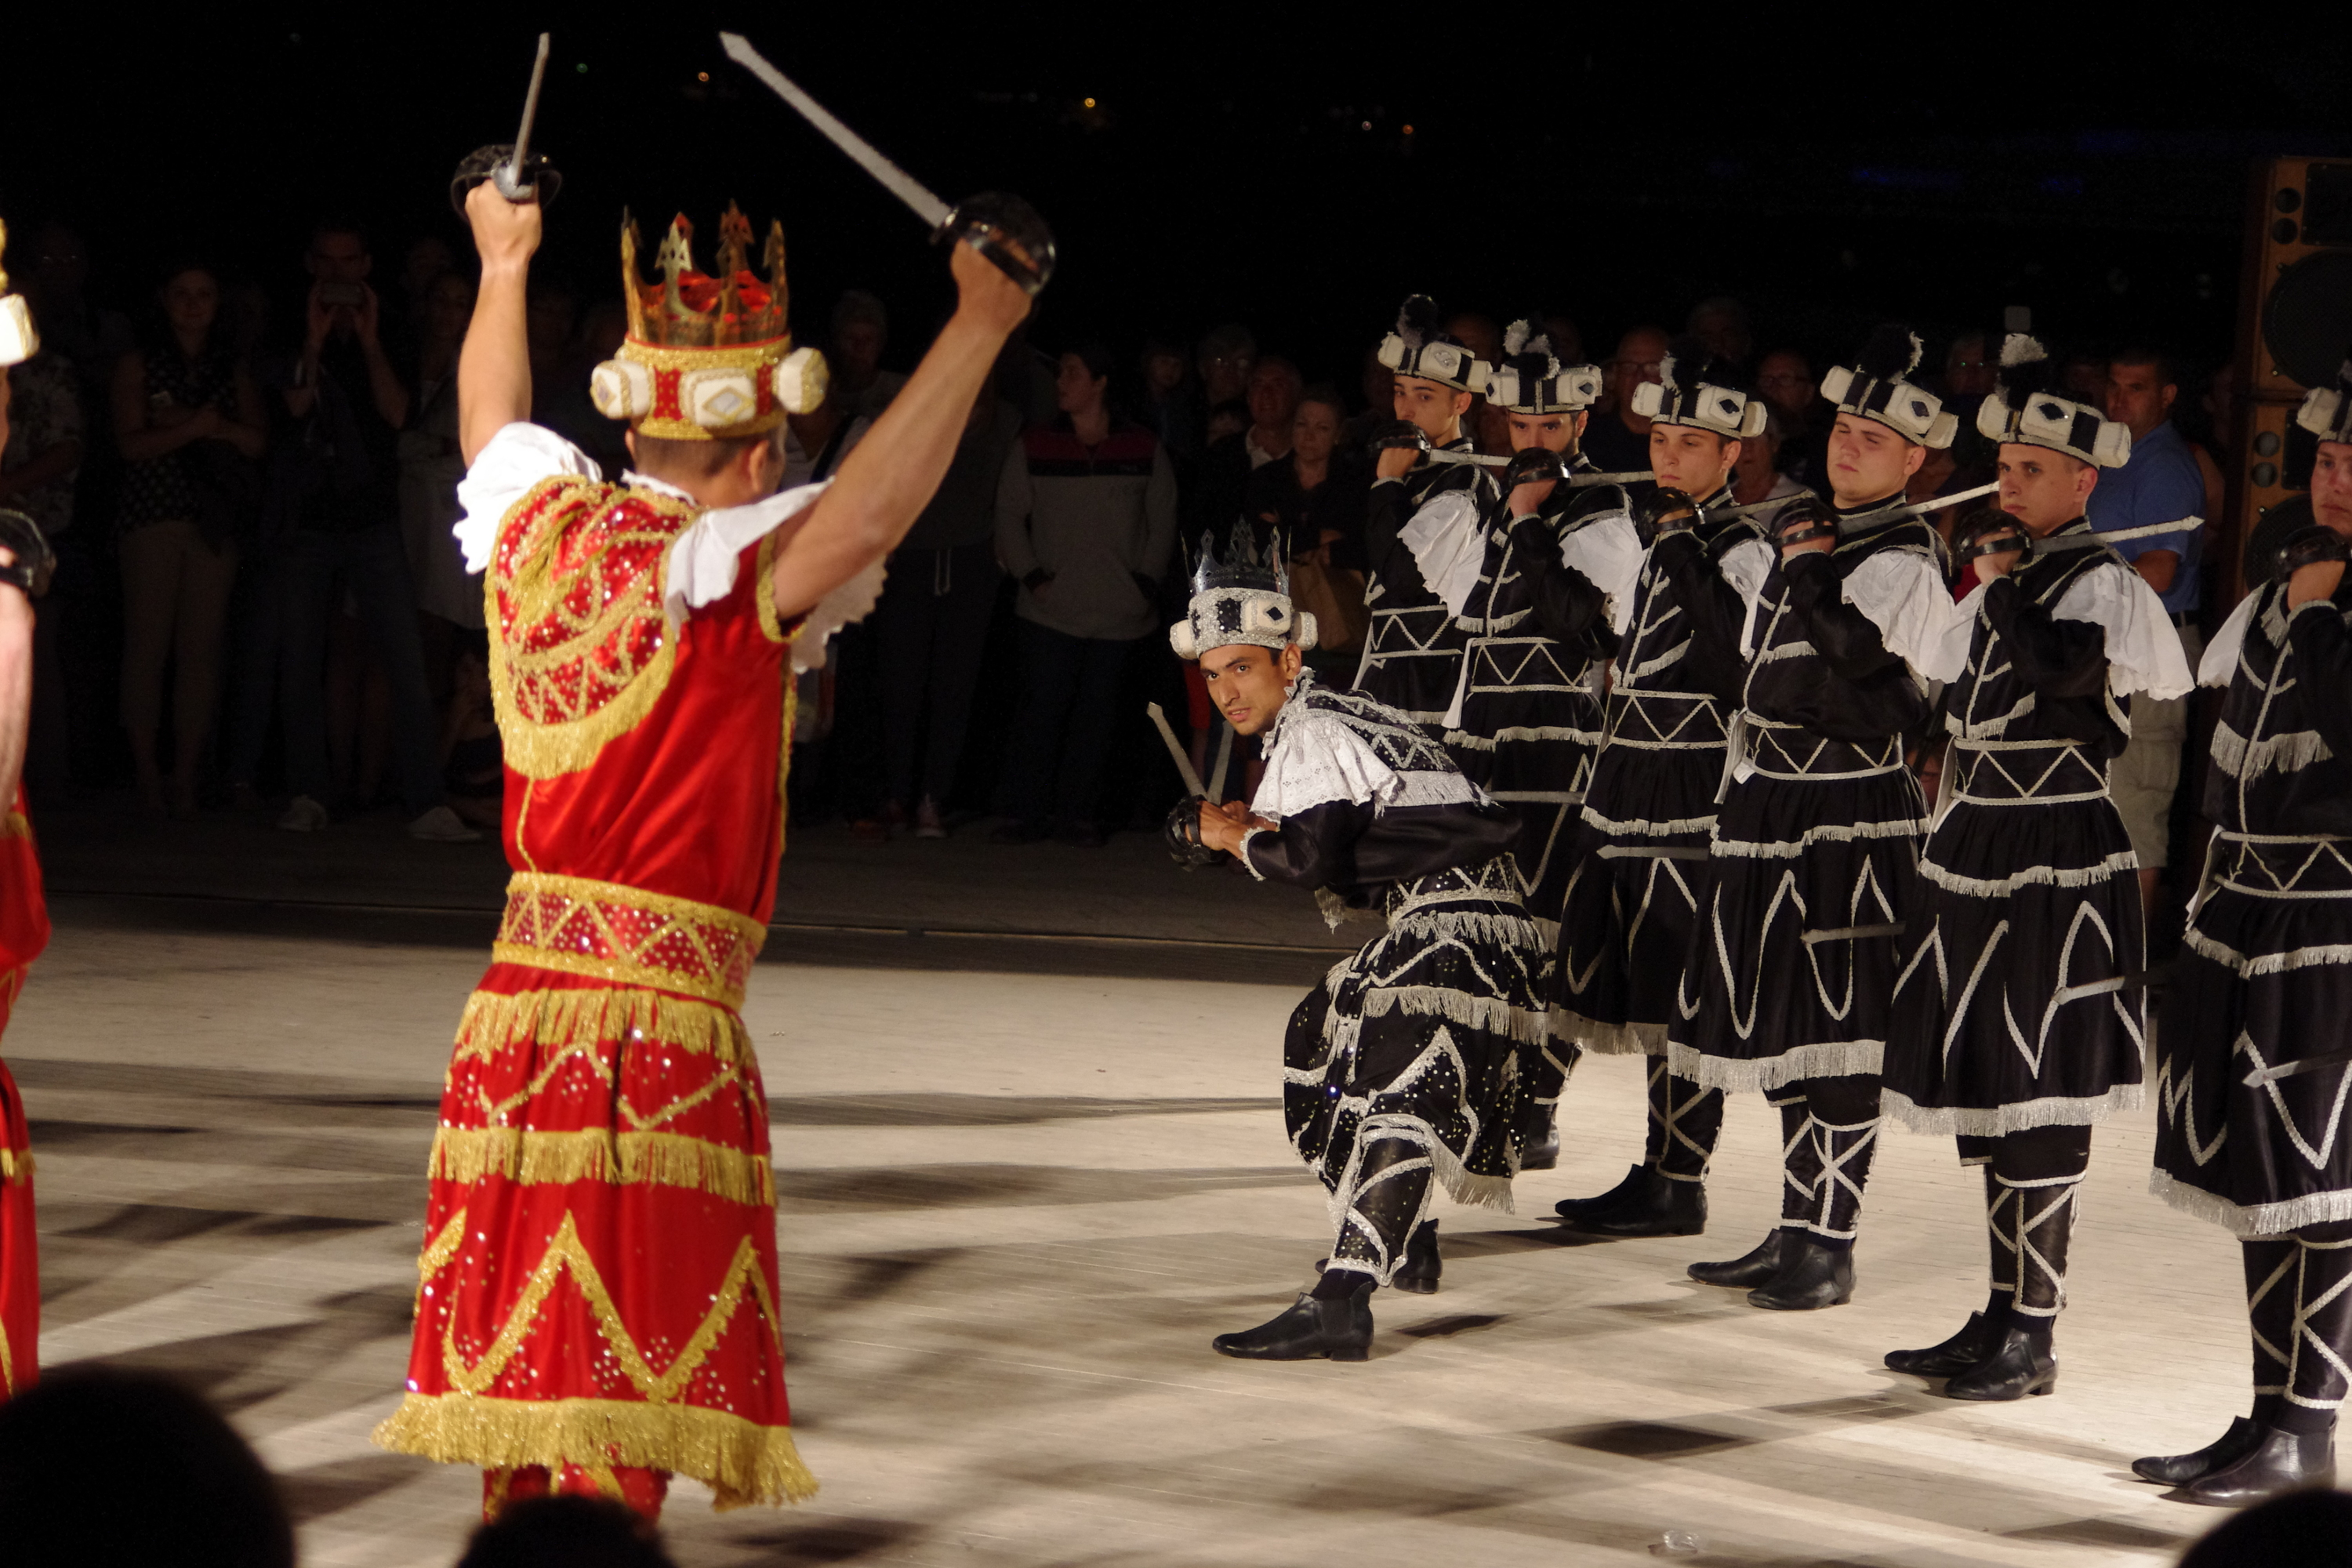 MoreÁka sword dance